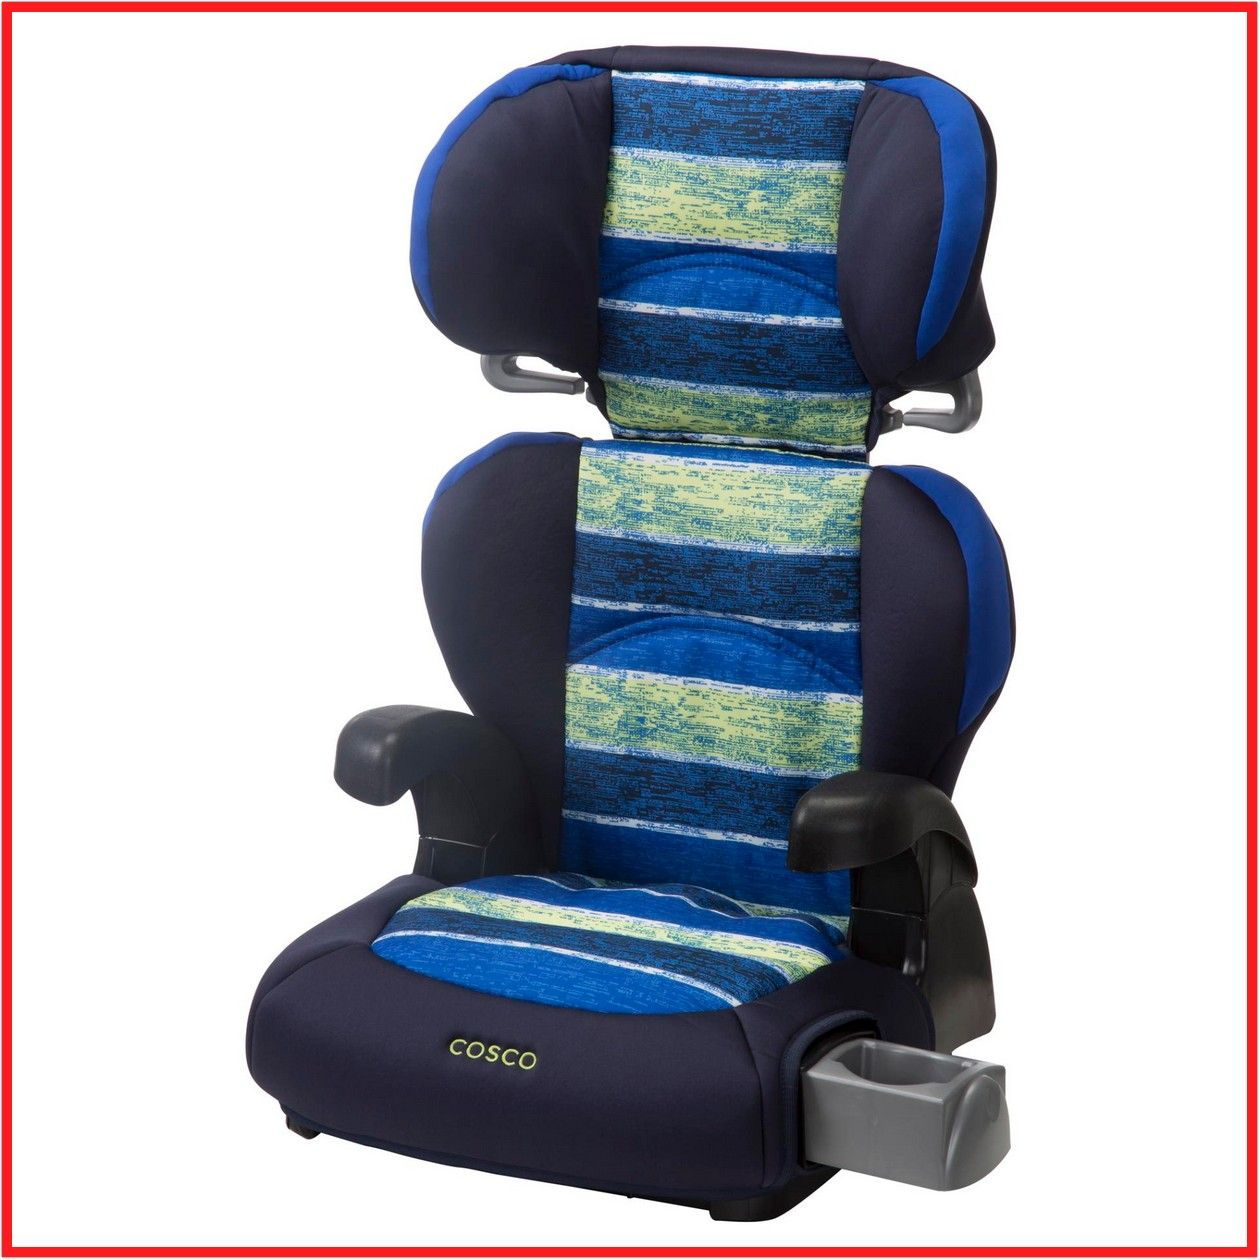 83 reference of baby car seat kmart in 2020 baby car